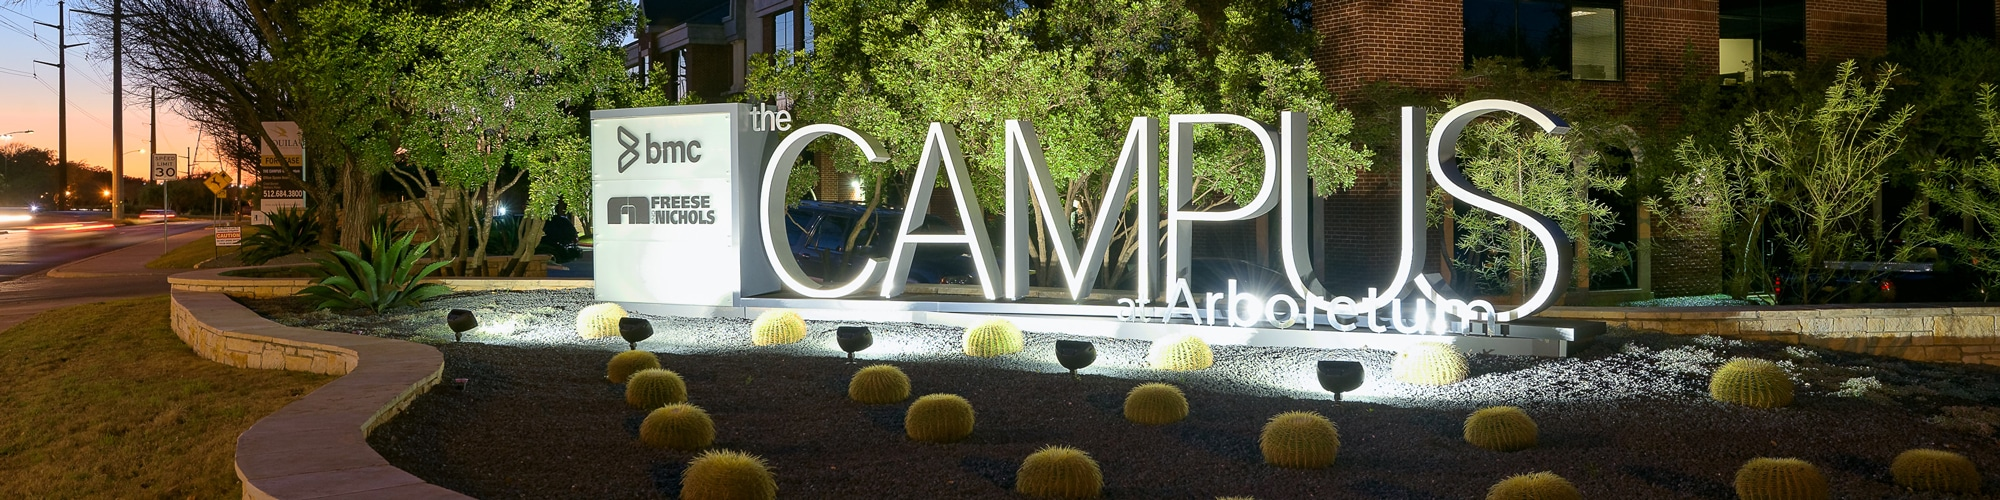 The Campus at Arboretum Sign | Office Space in Austin, Texas